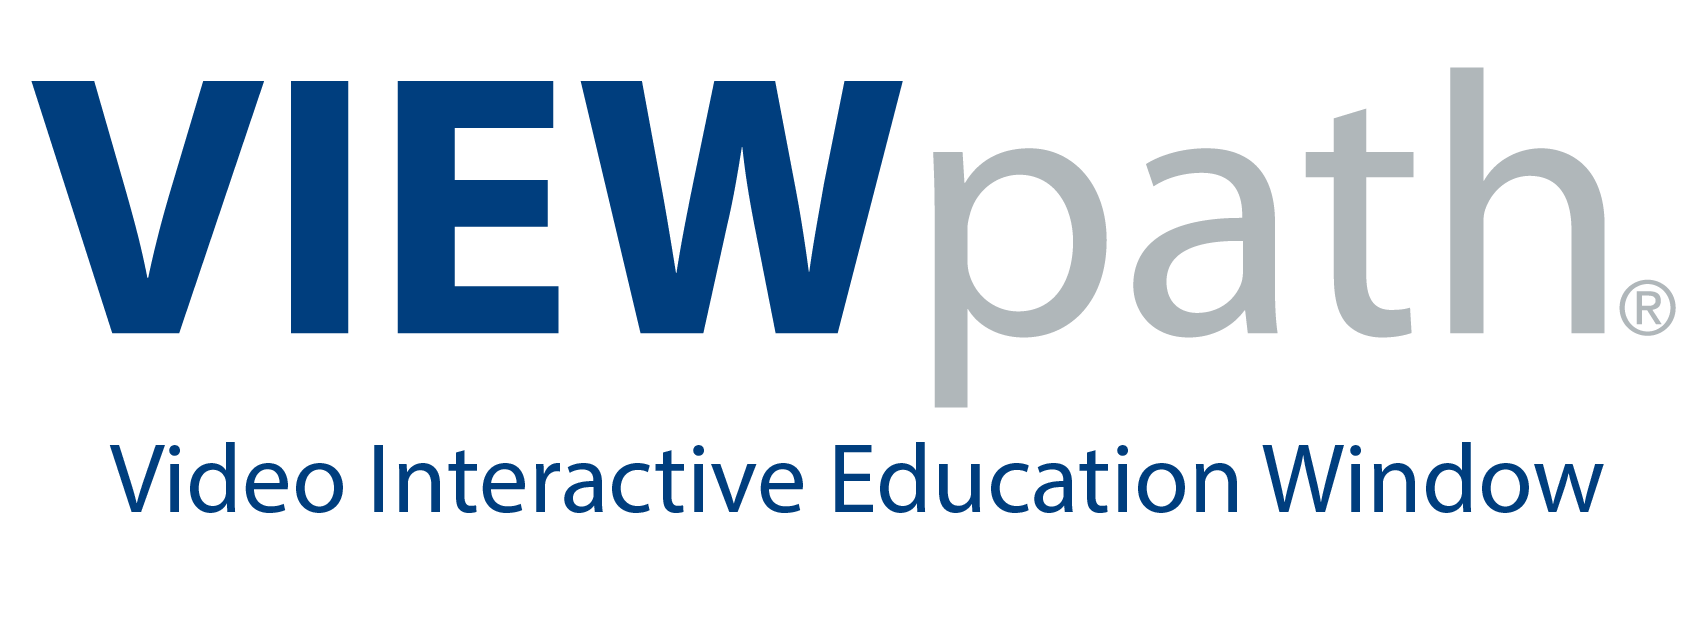 VIEWpath classroom video logo